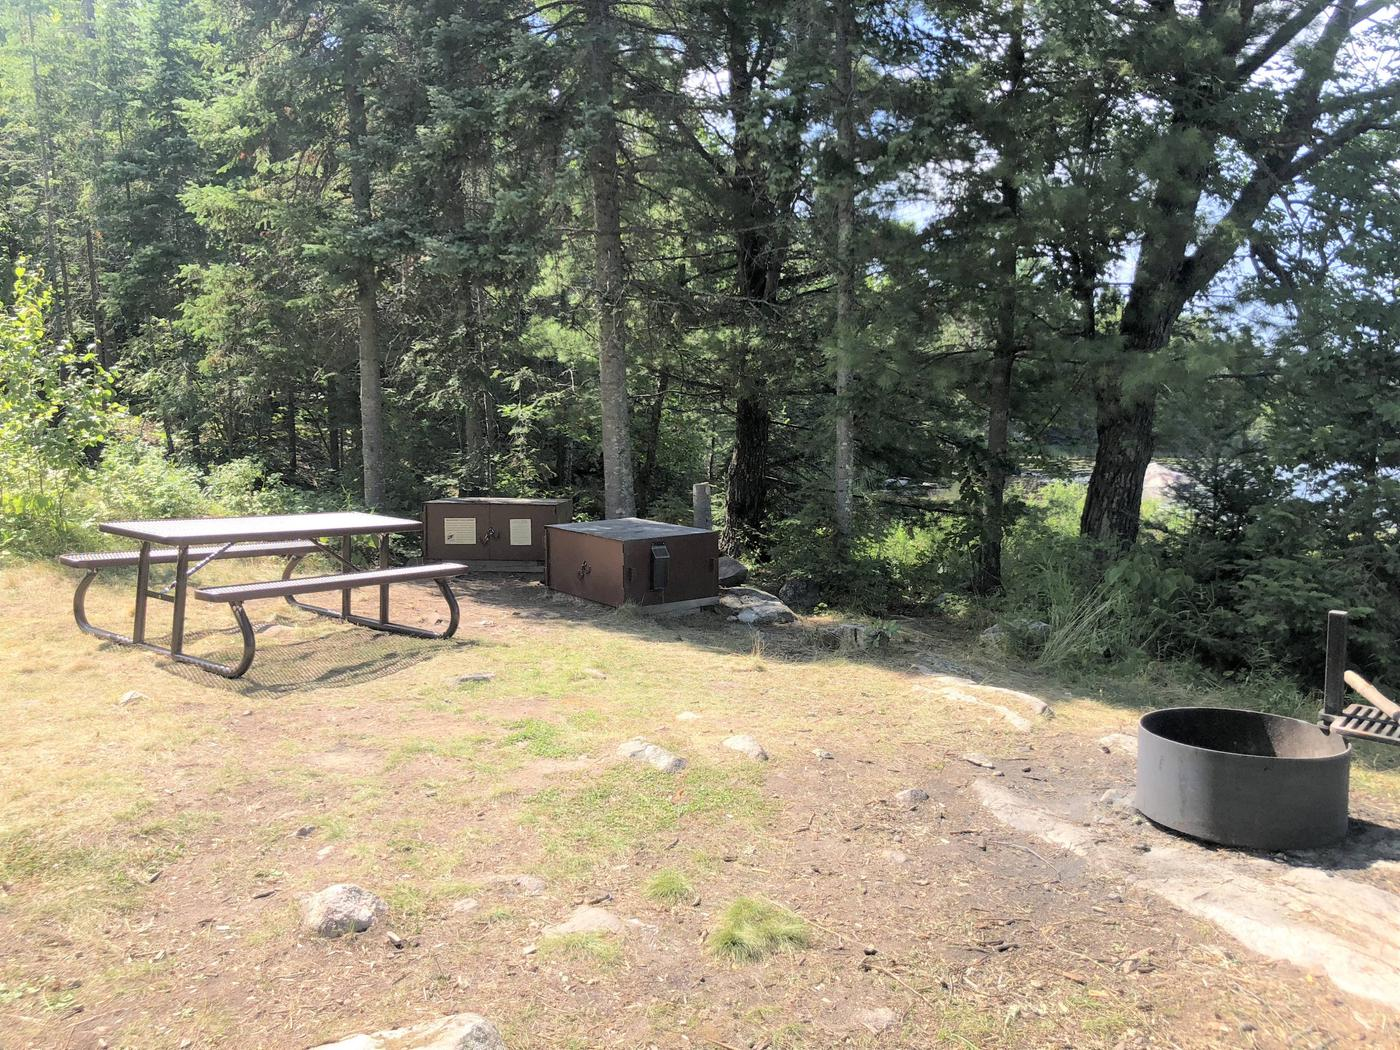 N69 - Hammer Bay PointView of campsite